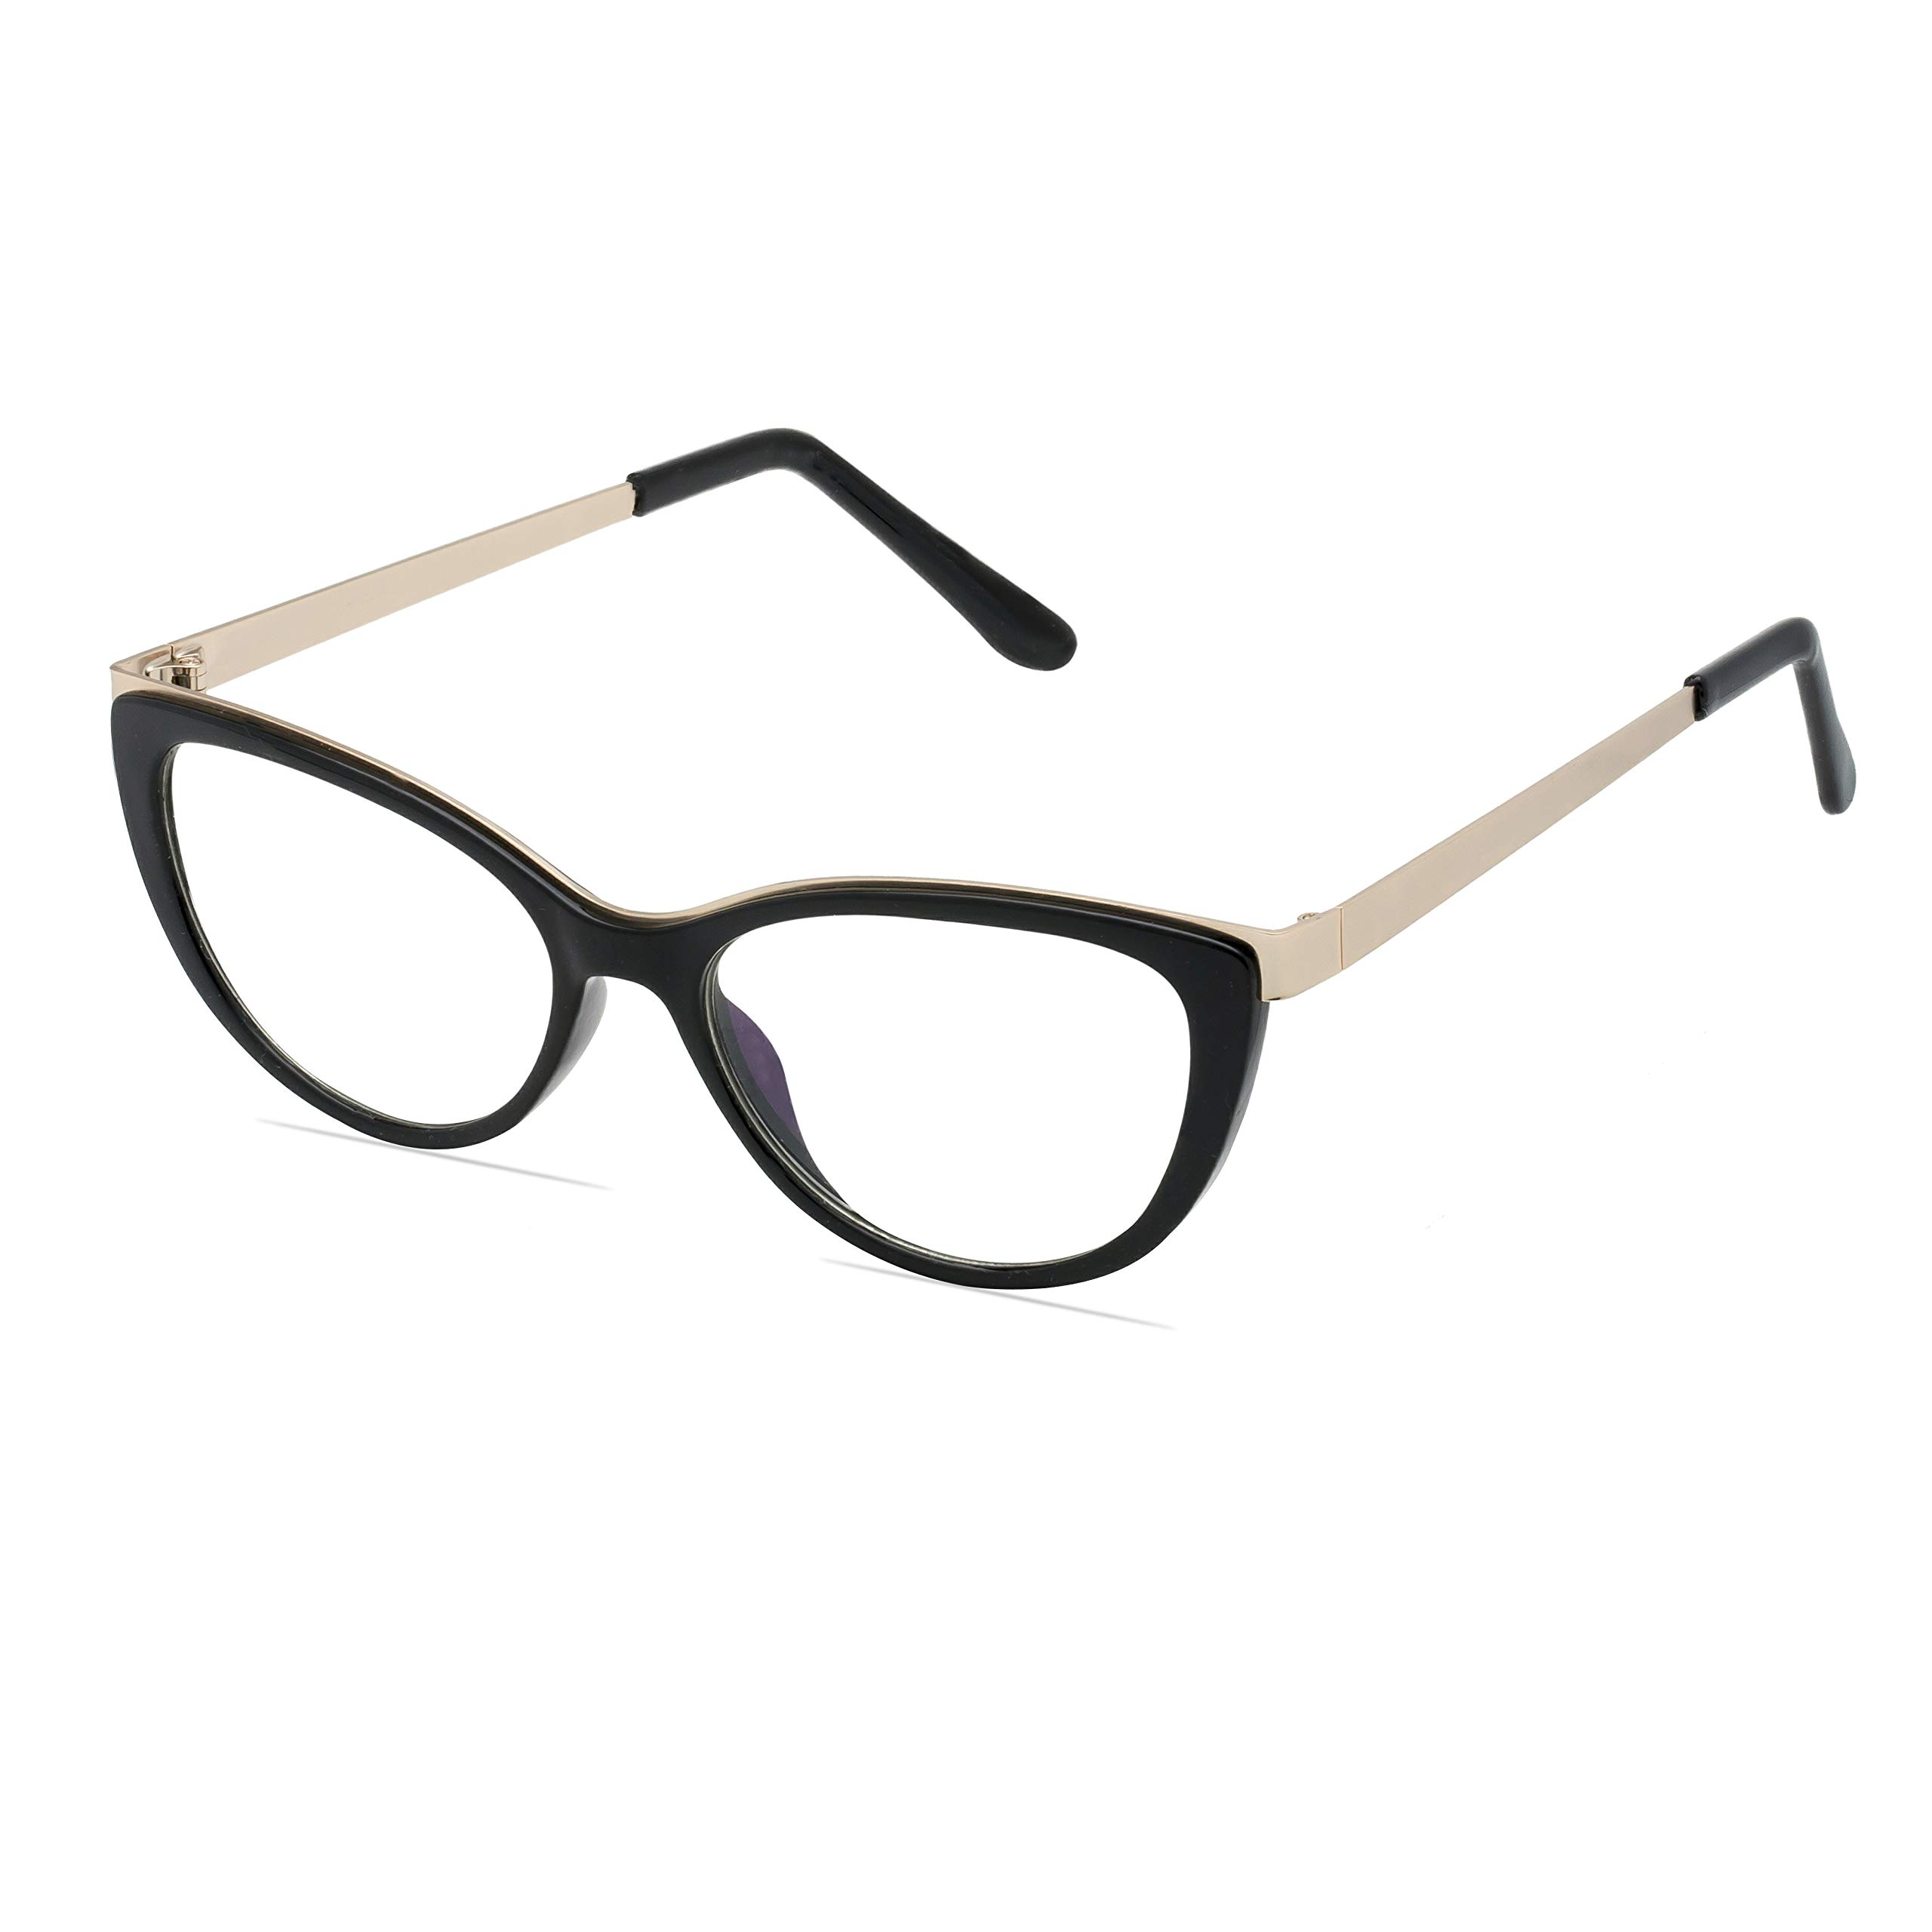 Premium Blue light blocking glasses - Cateye Frame equipped with Metal Arms and high grade blue block lenses- Anti Eyestrain